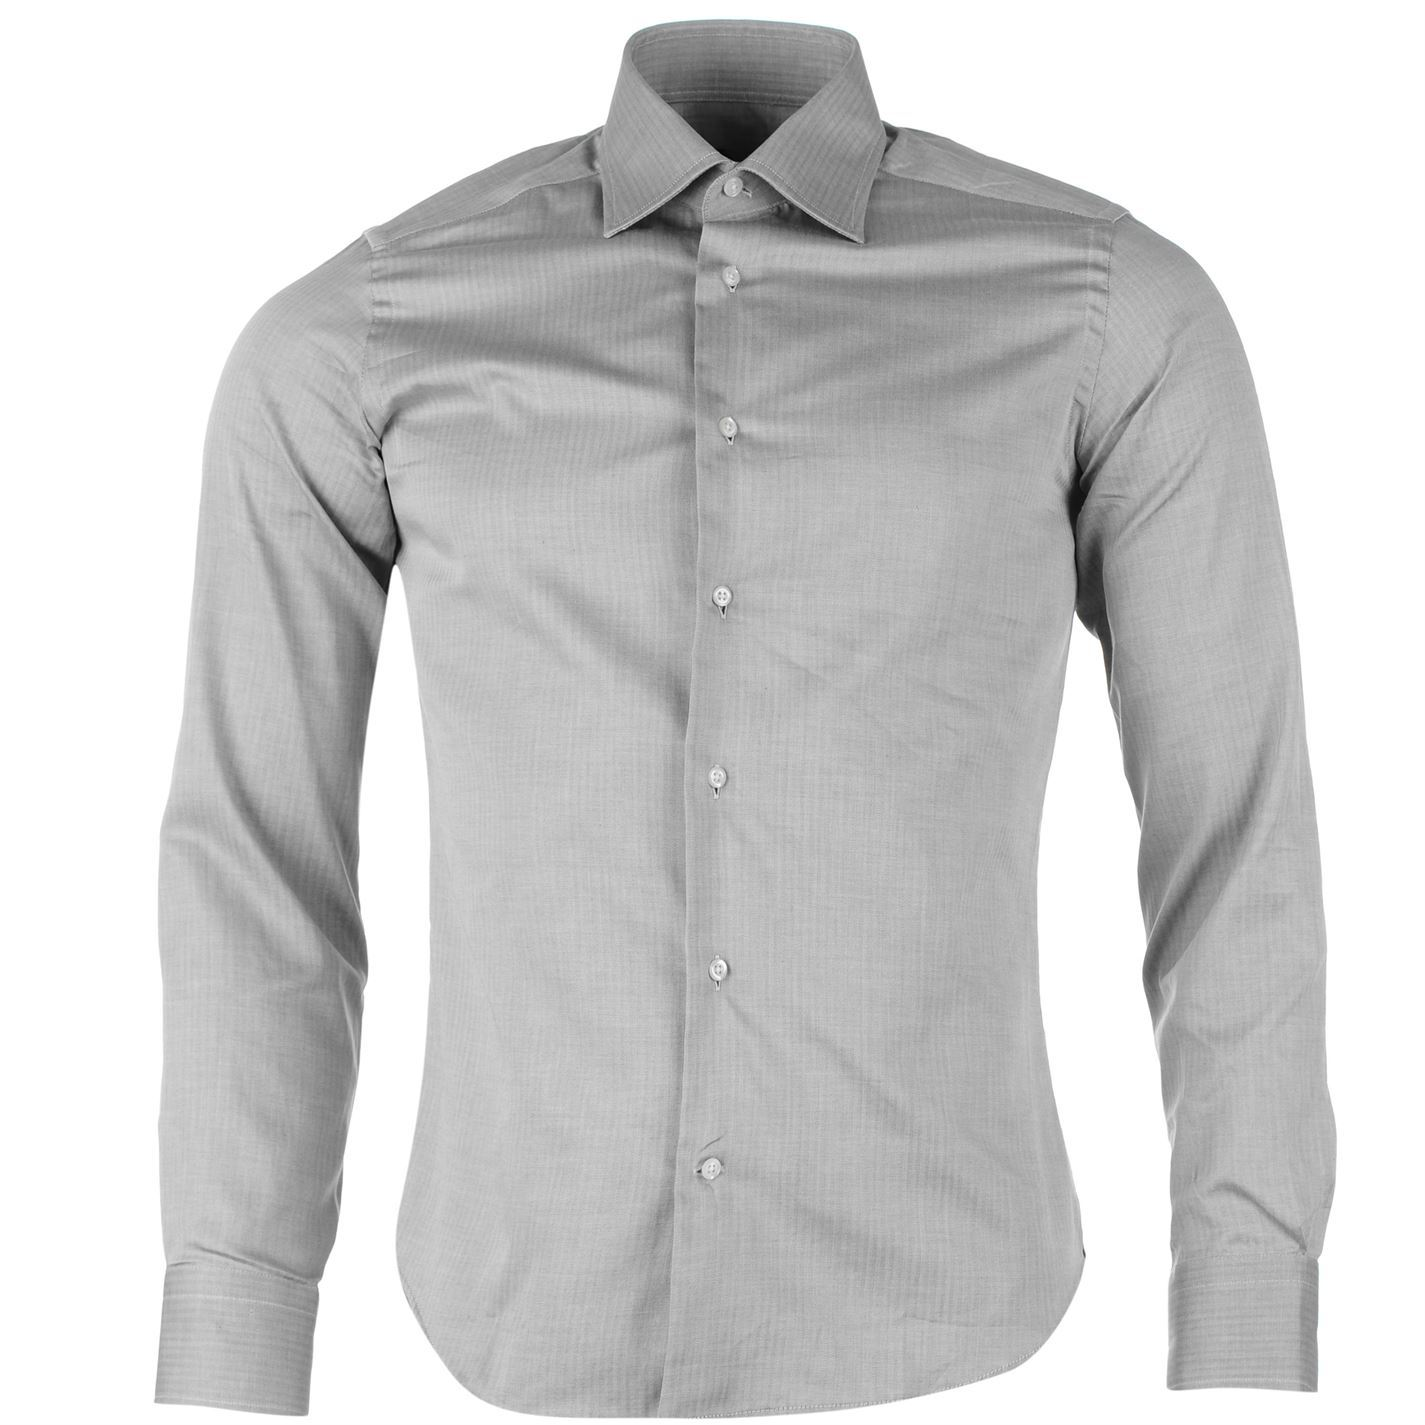 Filangeri mens pdv formal shirt button down collar long for Top mens button down shirts